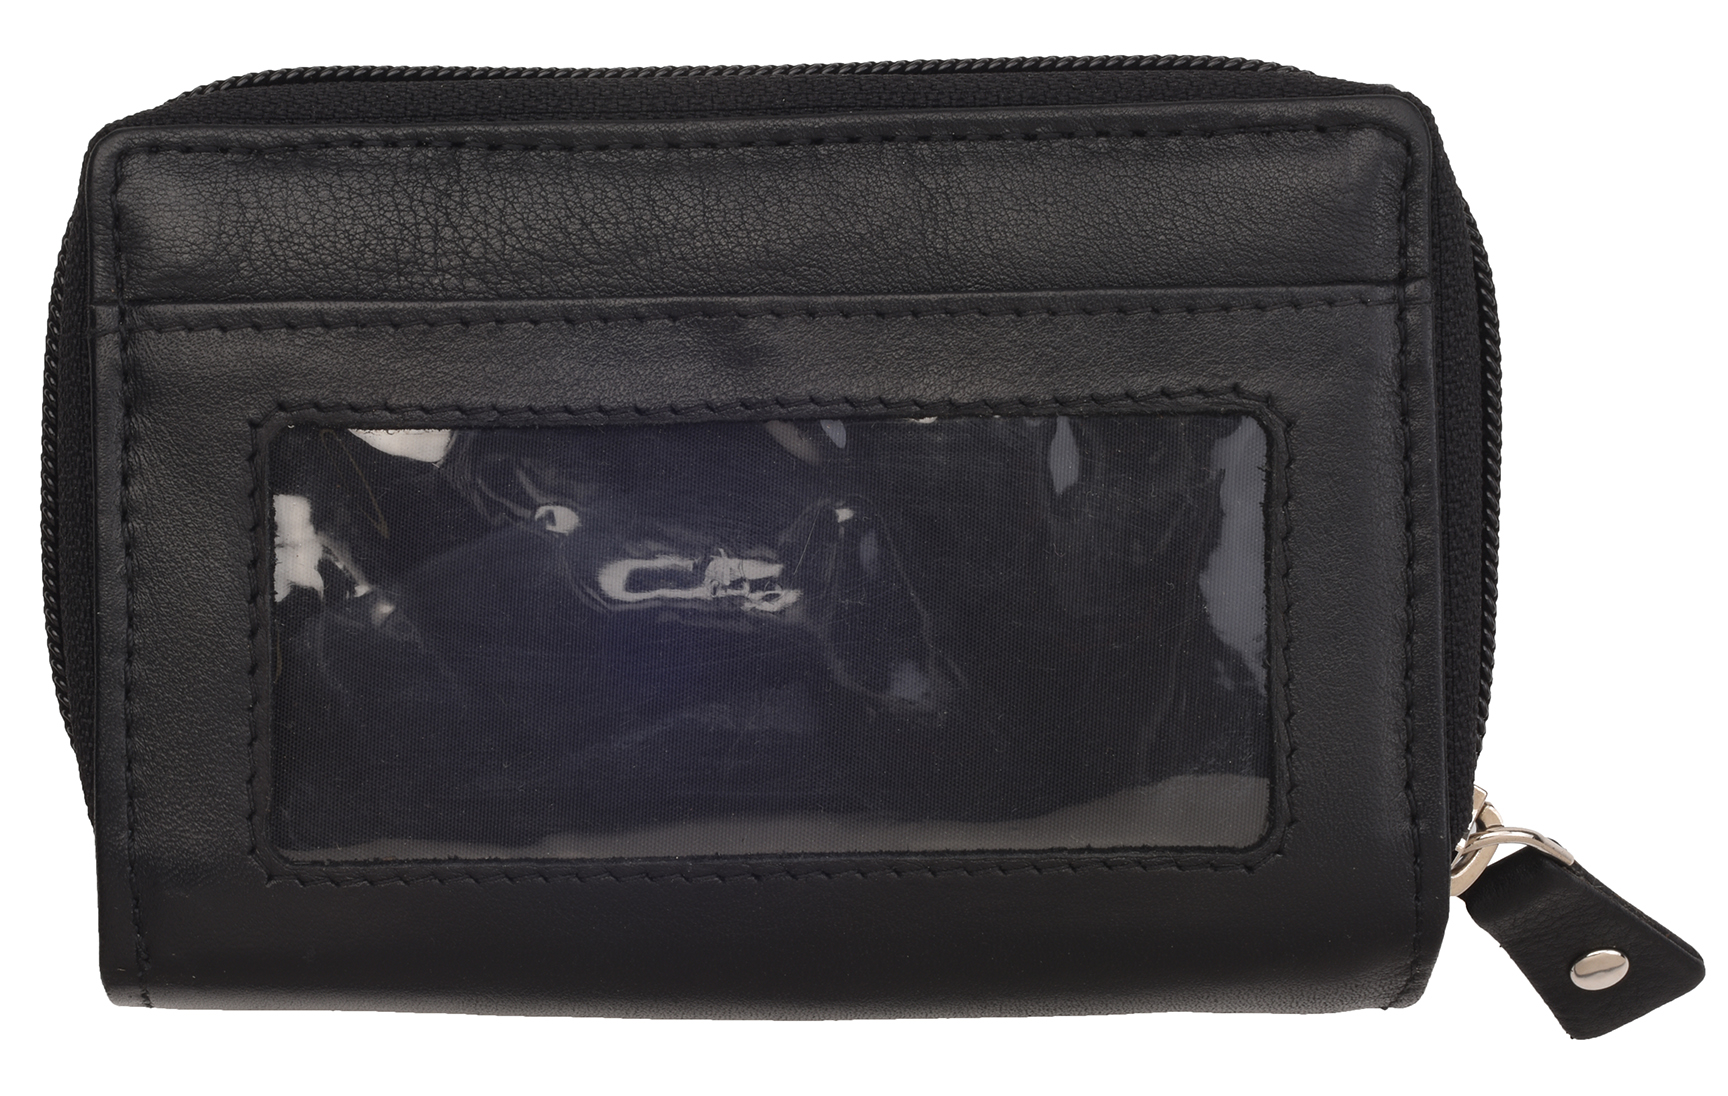 Ladies-Womens-Luxury-Super-Soft-Genuine-Leather-RFID-Blocking-Wallet-Purse-Black miniature 4